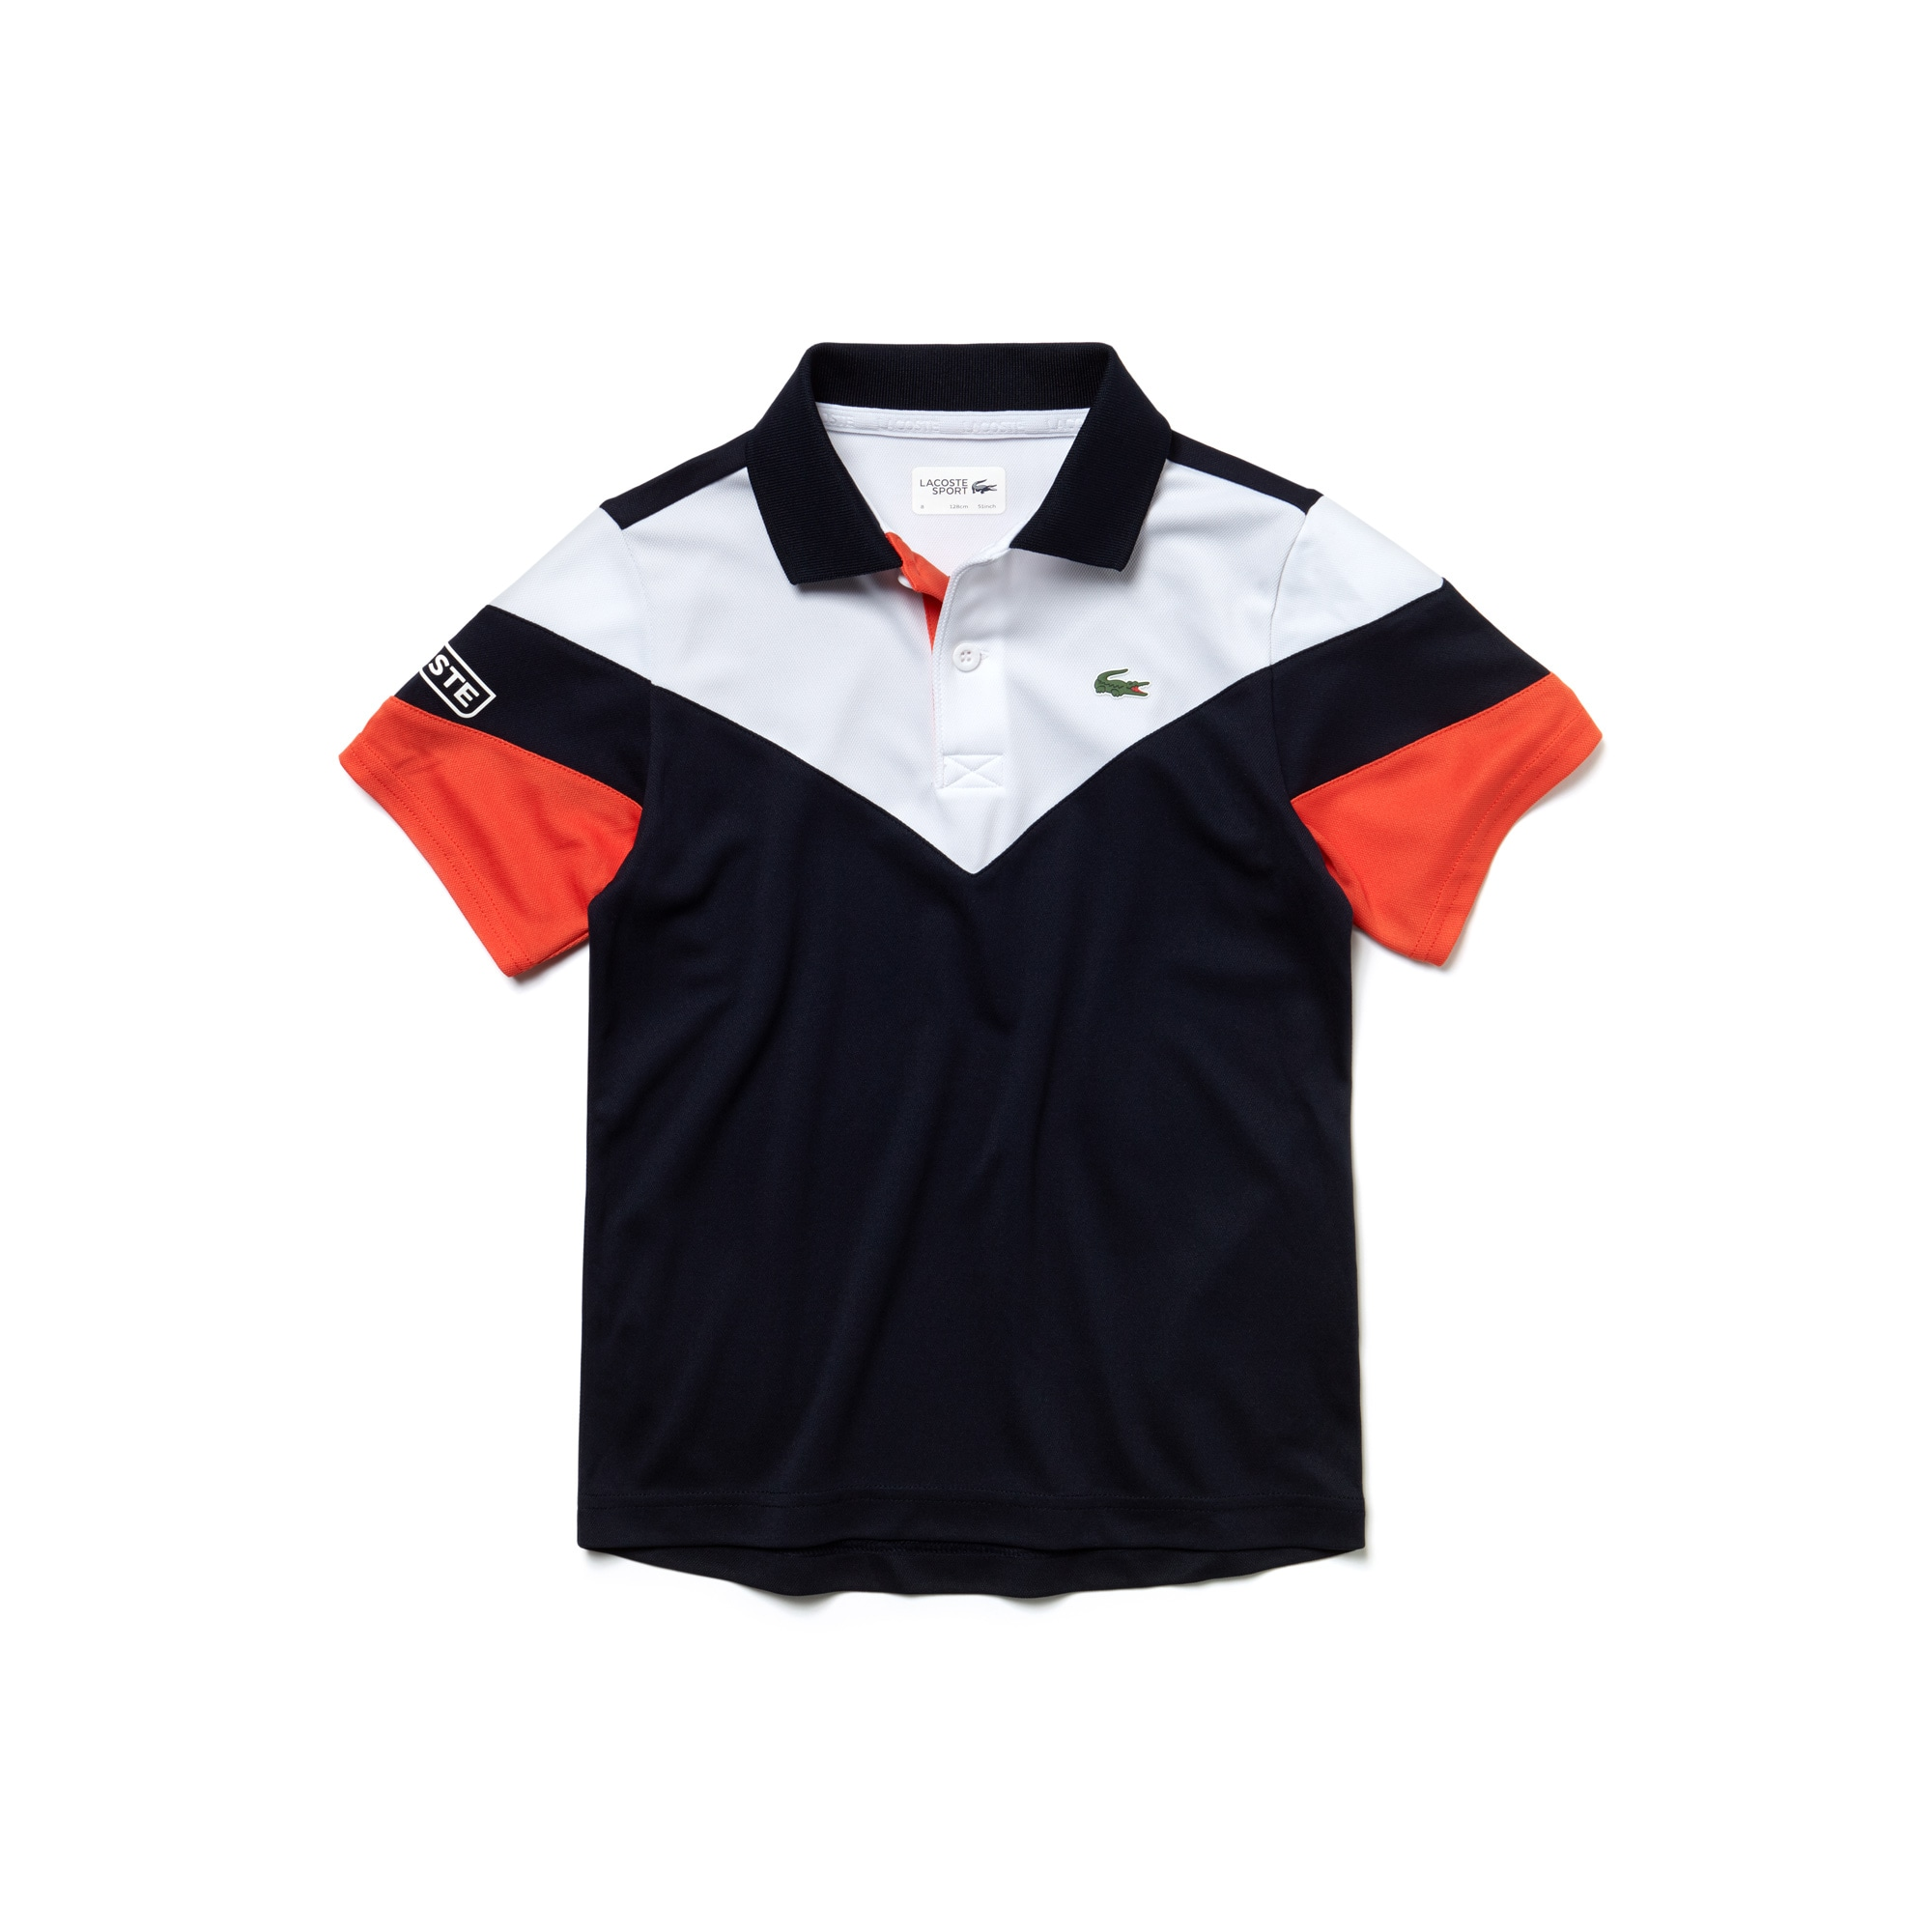 Polo Garçon Tennis Lacoste SPORT en piqué technique color block